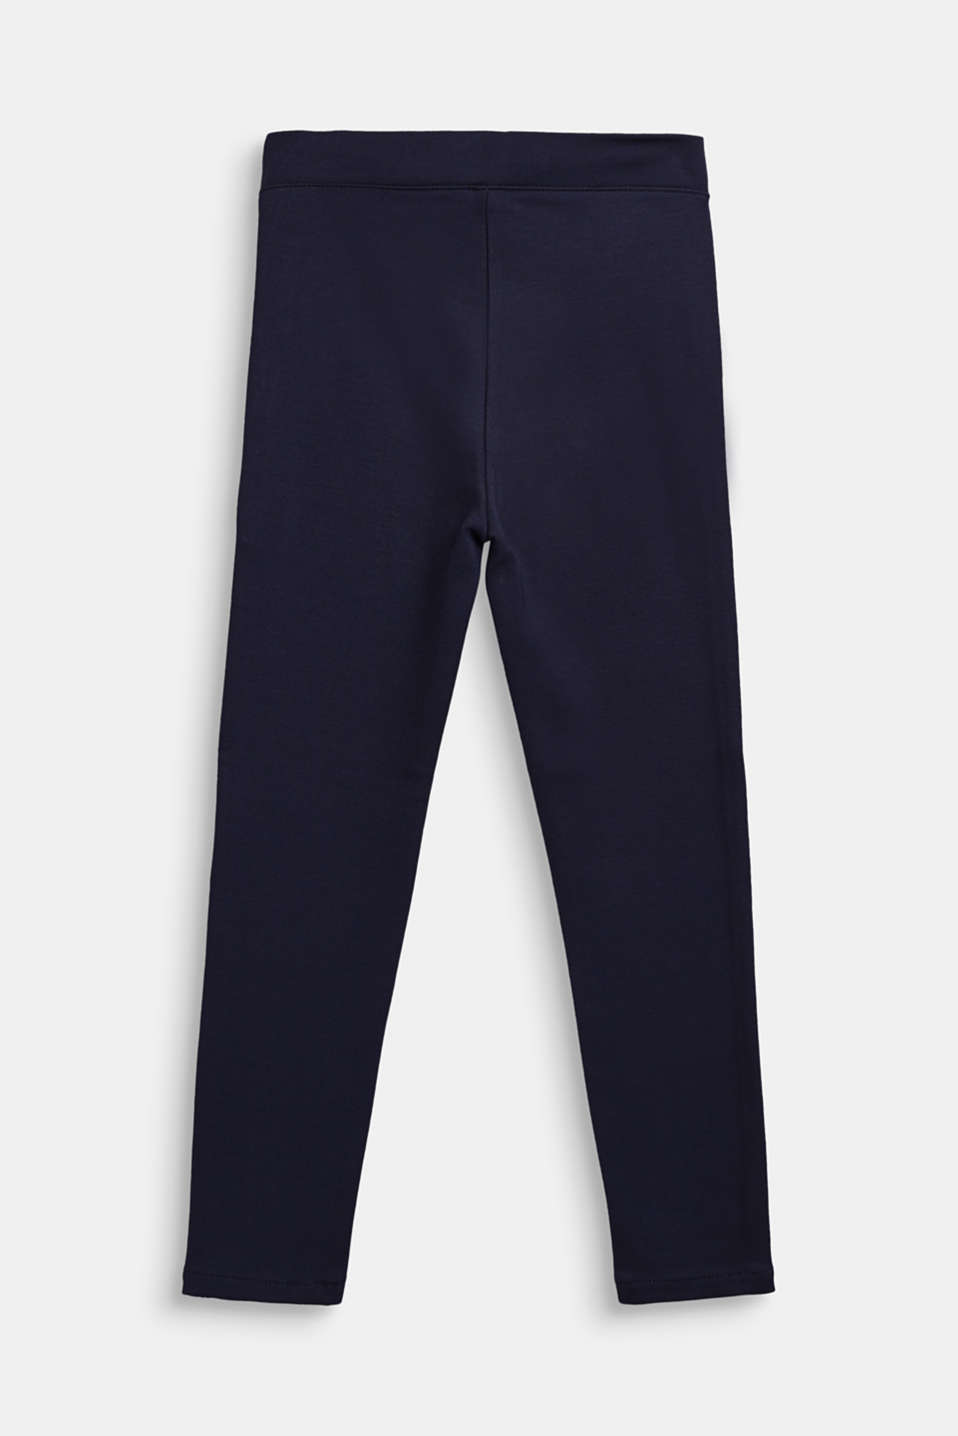 Jersey trousers with metallic piping, NAVY BLUE, detail image number 1